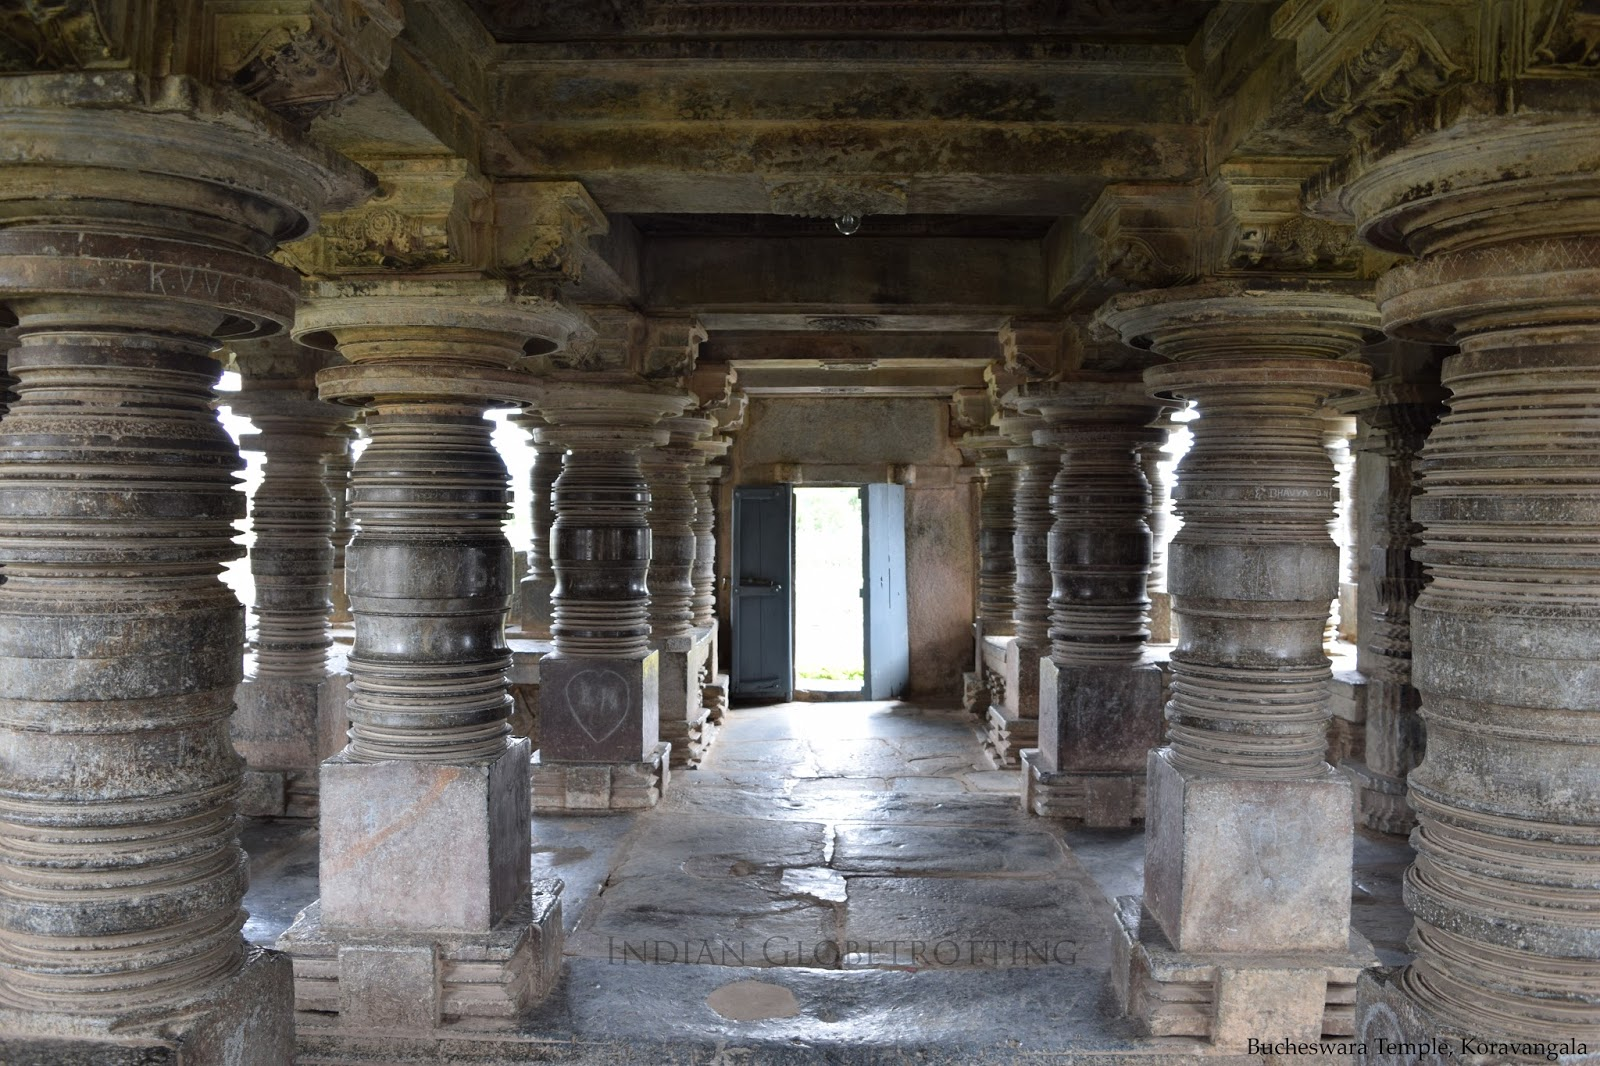 Typical hoysala type lathe tuned pillar inside the open mantapa of Bucheswara temple in koravangala